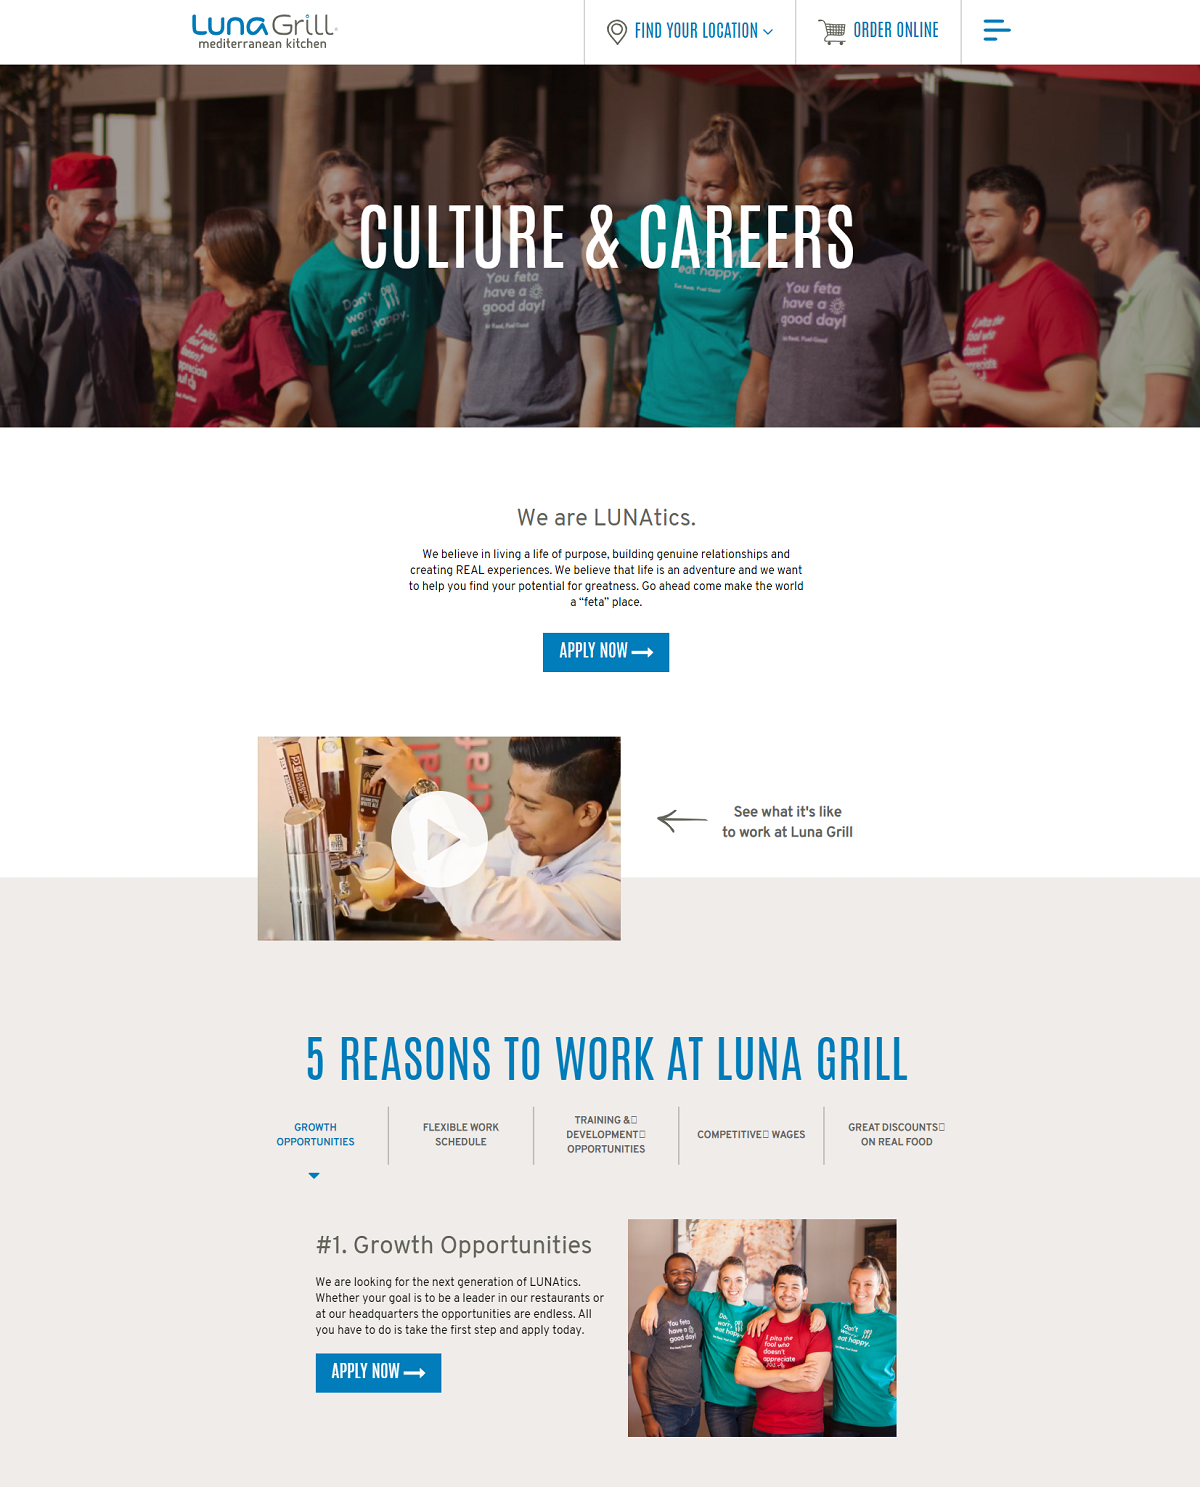 luna grill career page